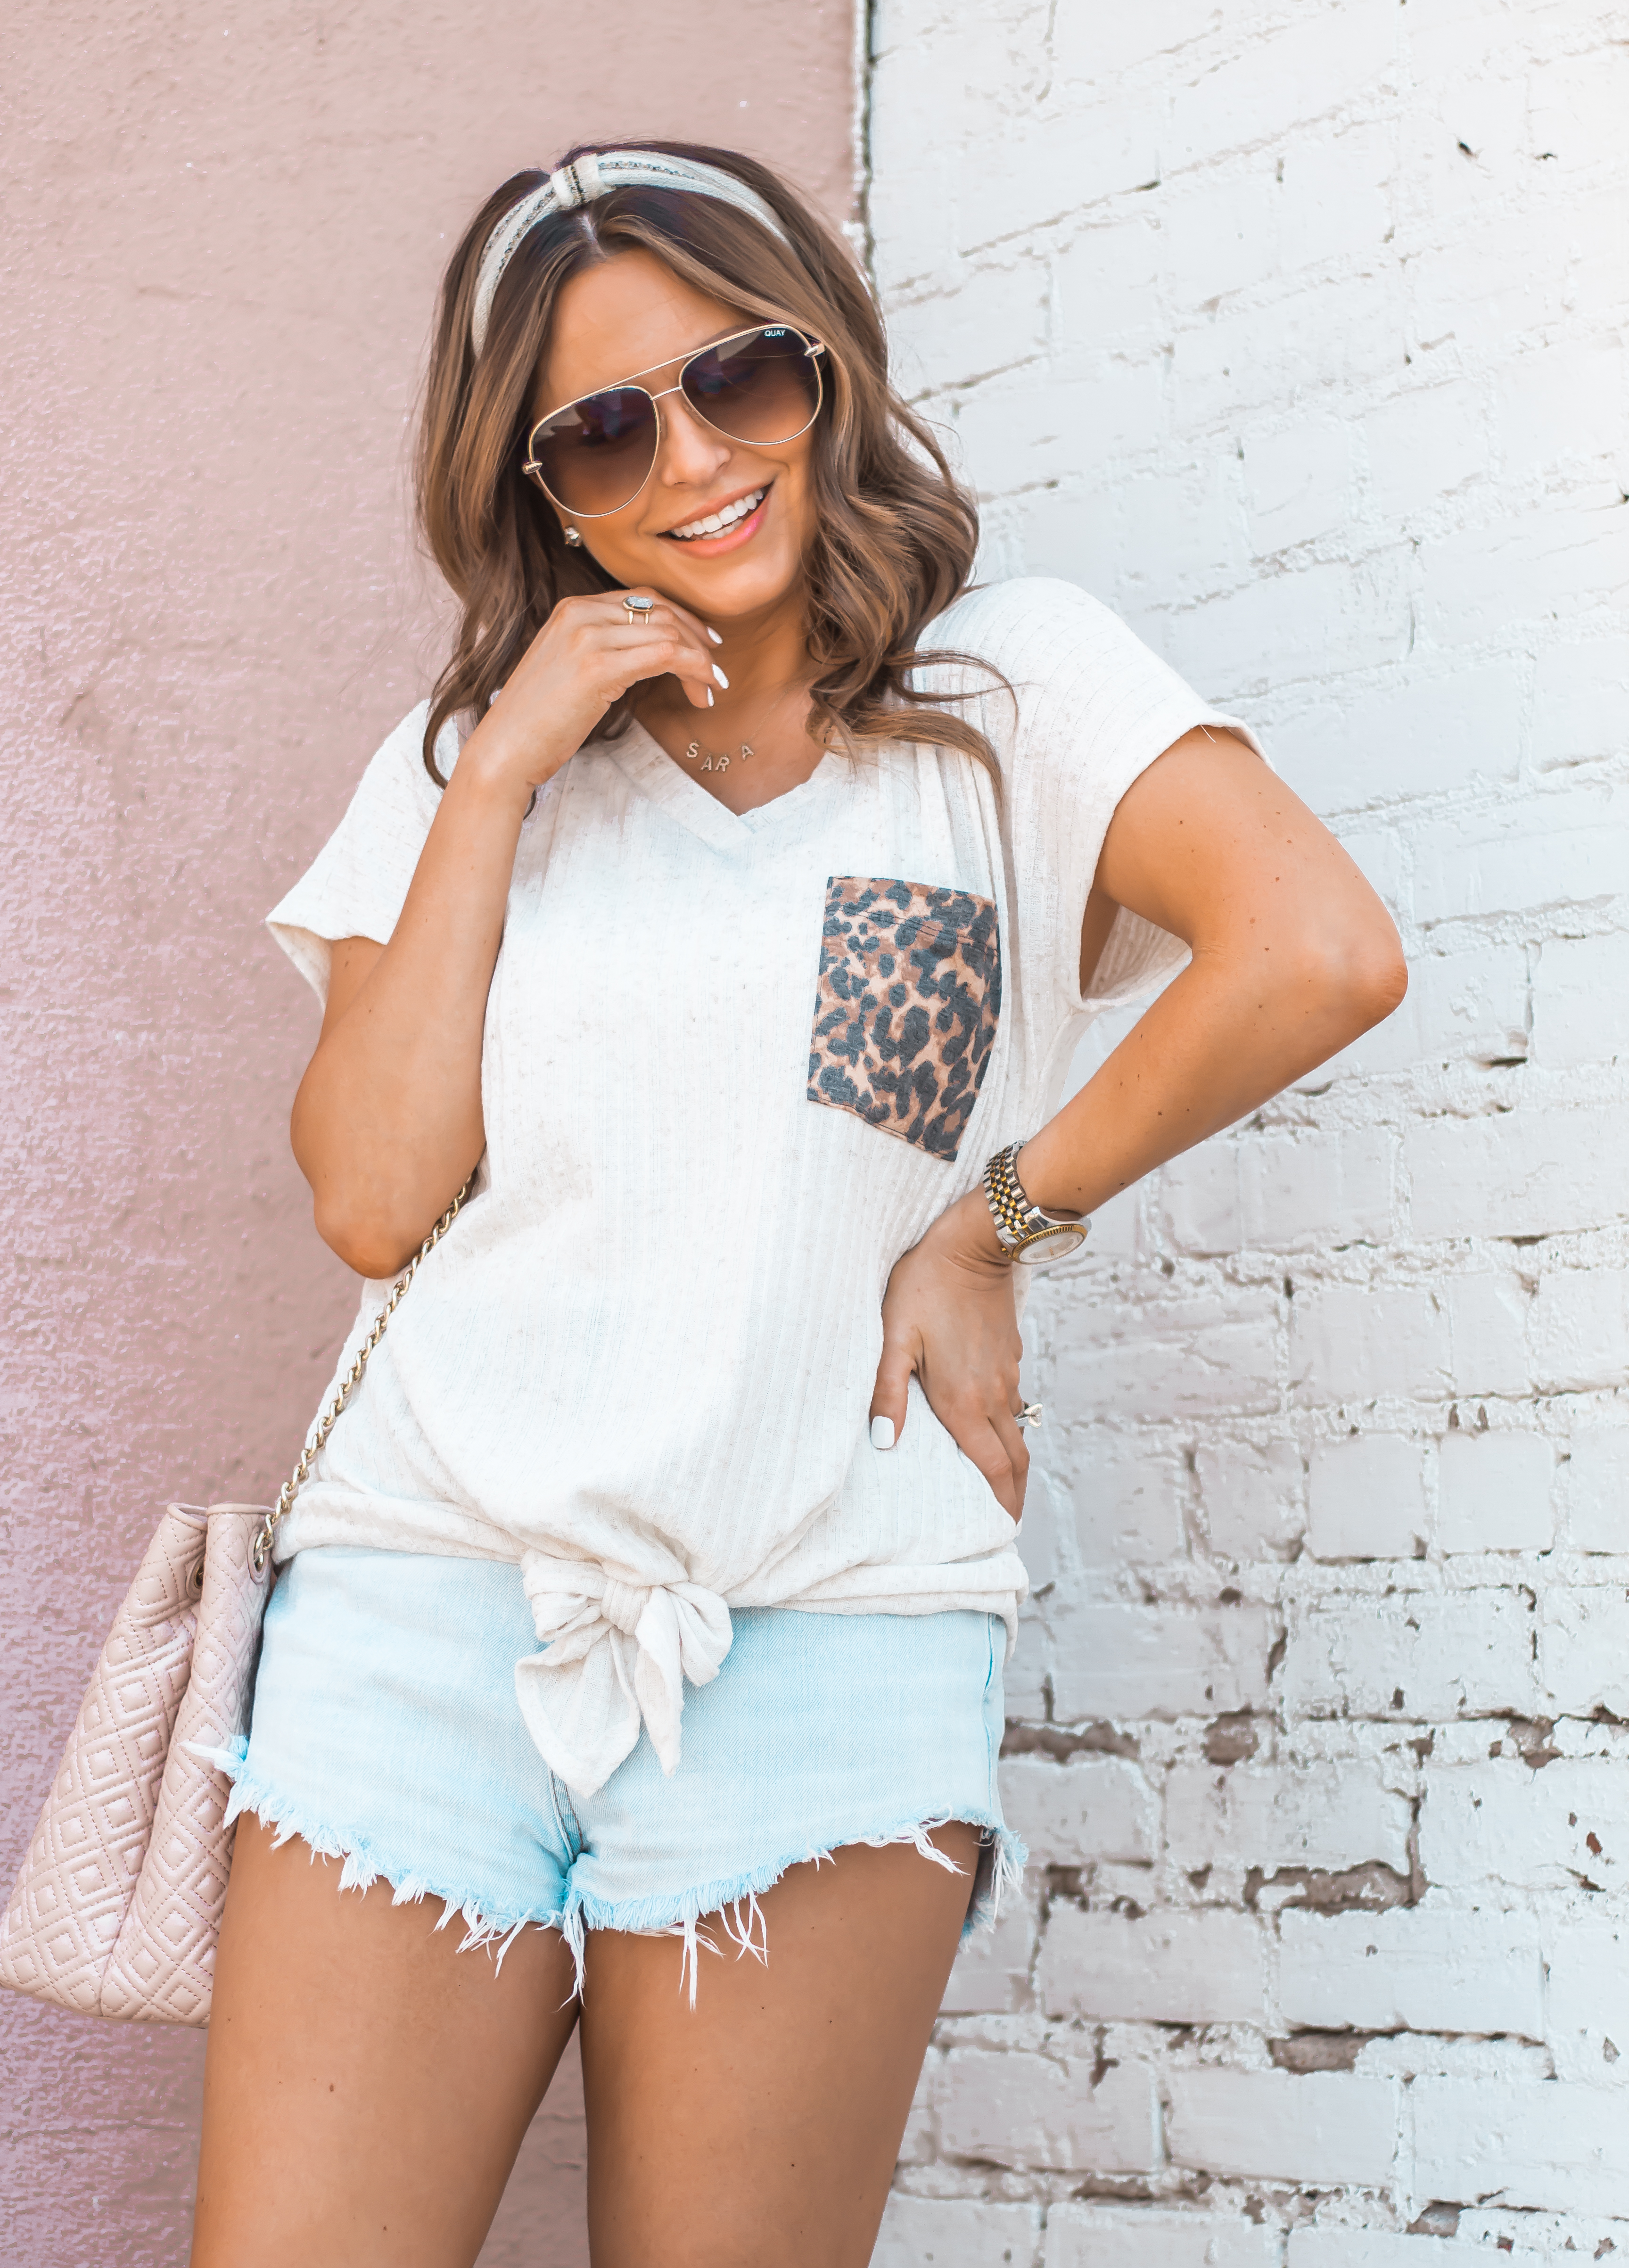 Women's Fashion-Summer Fashion-Summer Outfit Inspiration-Sabby Style-Omaha Blogger-Leopard Pocket Top-The Style Bar Boutique-Cutoff Shorts-Espadrille Wedges-Marc Fisher Wedges-Tory Burch Fleming-Quay Sunglasses-Headband Trend-Omaha-Nebraska-Midwest Blogger-2